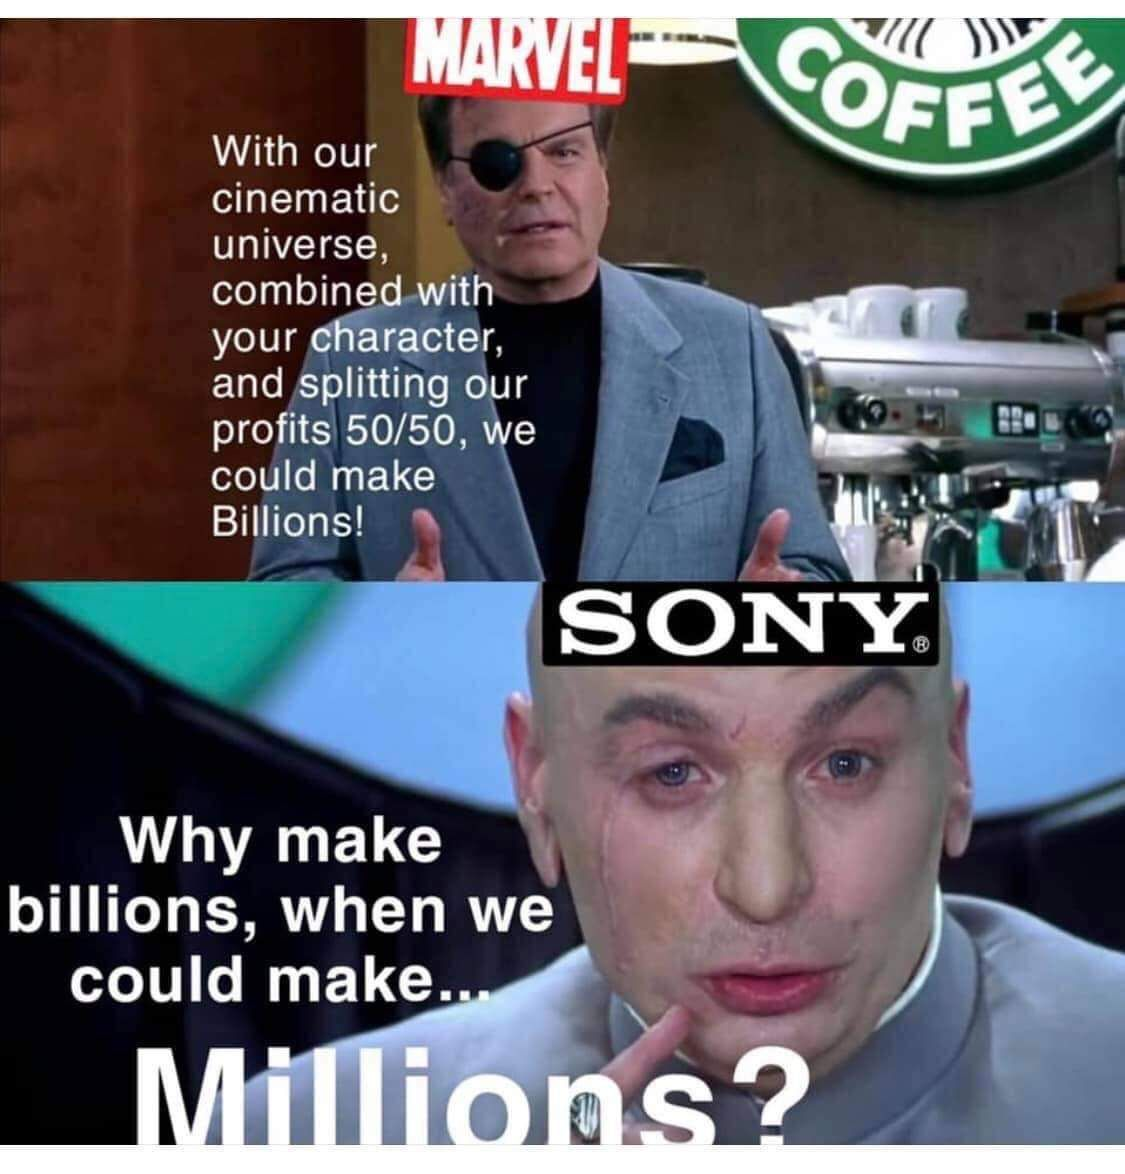 Billions? Why not Millions?